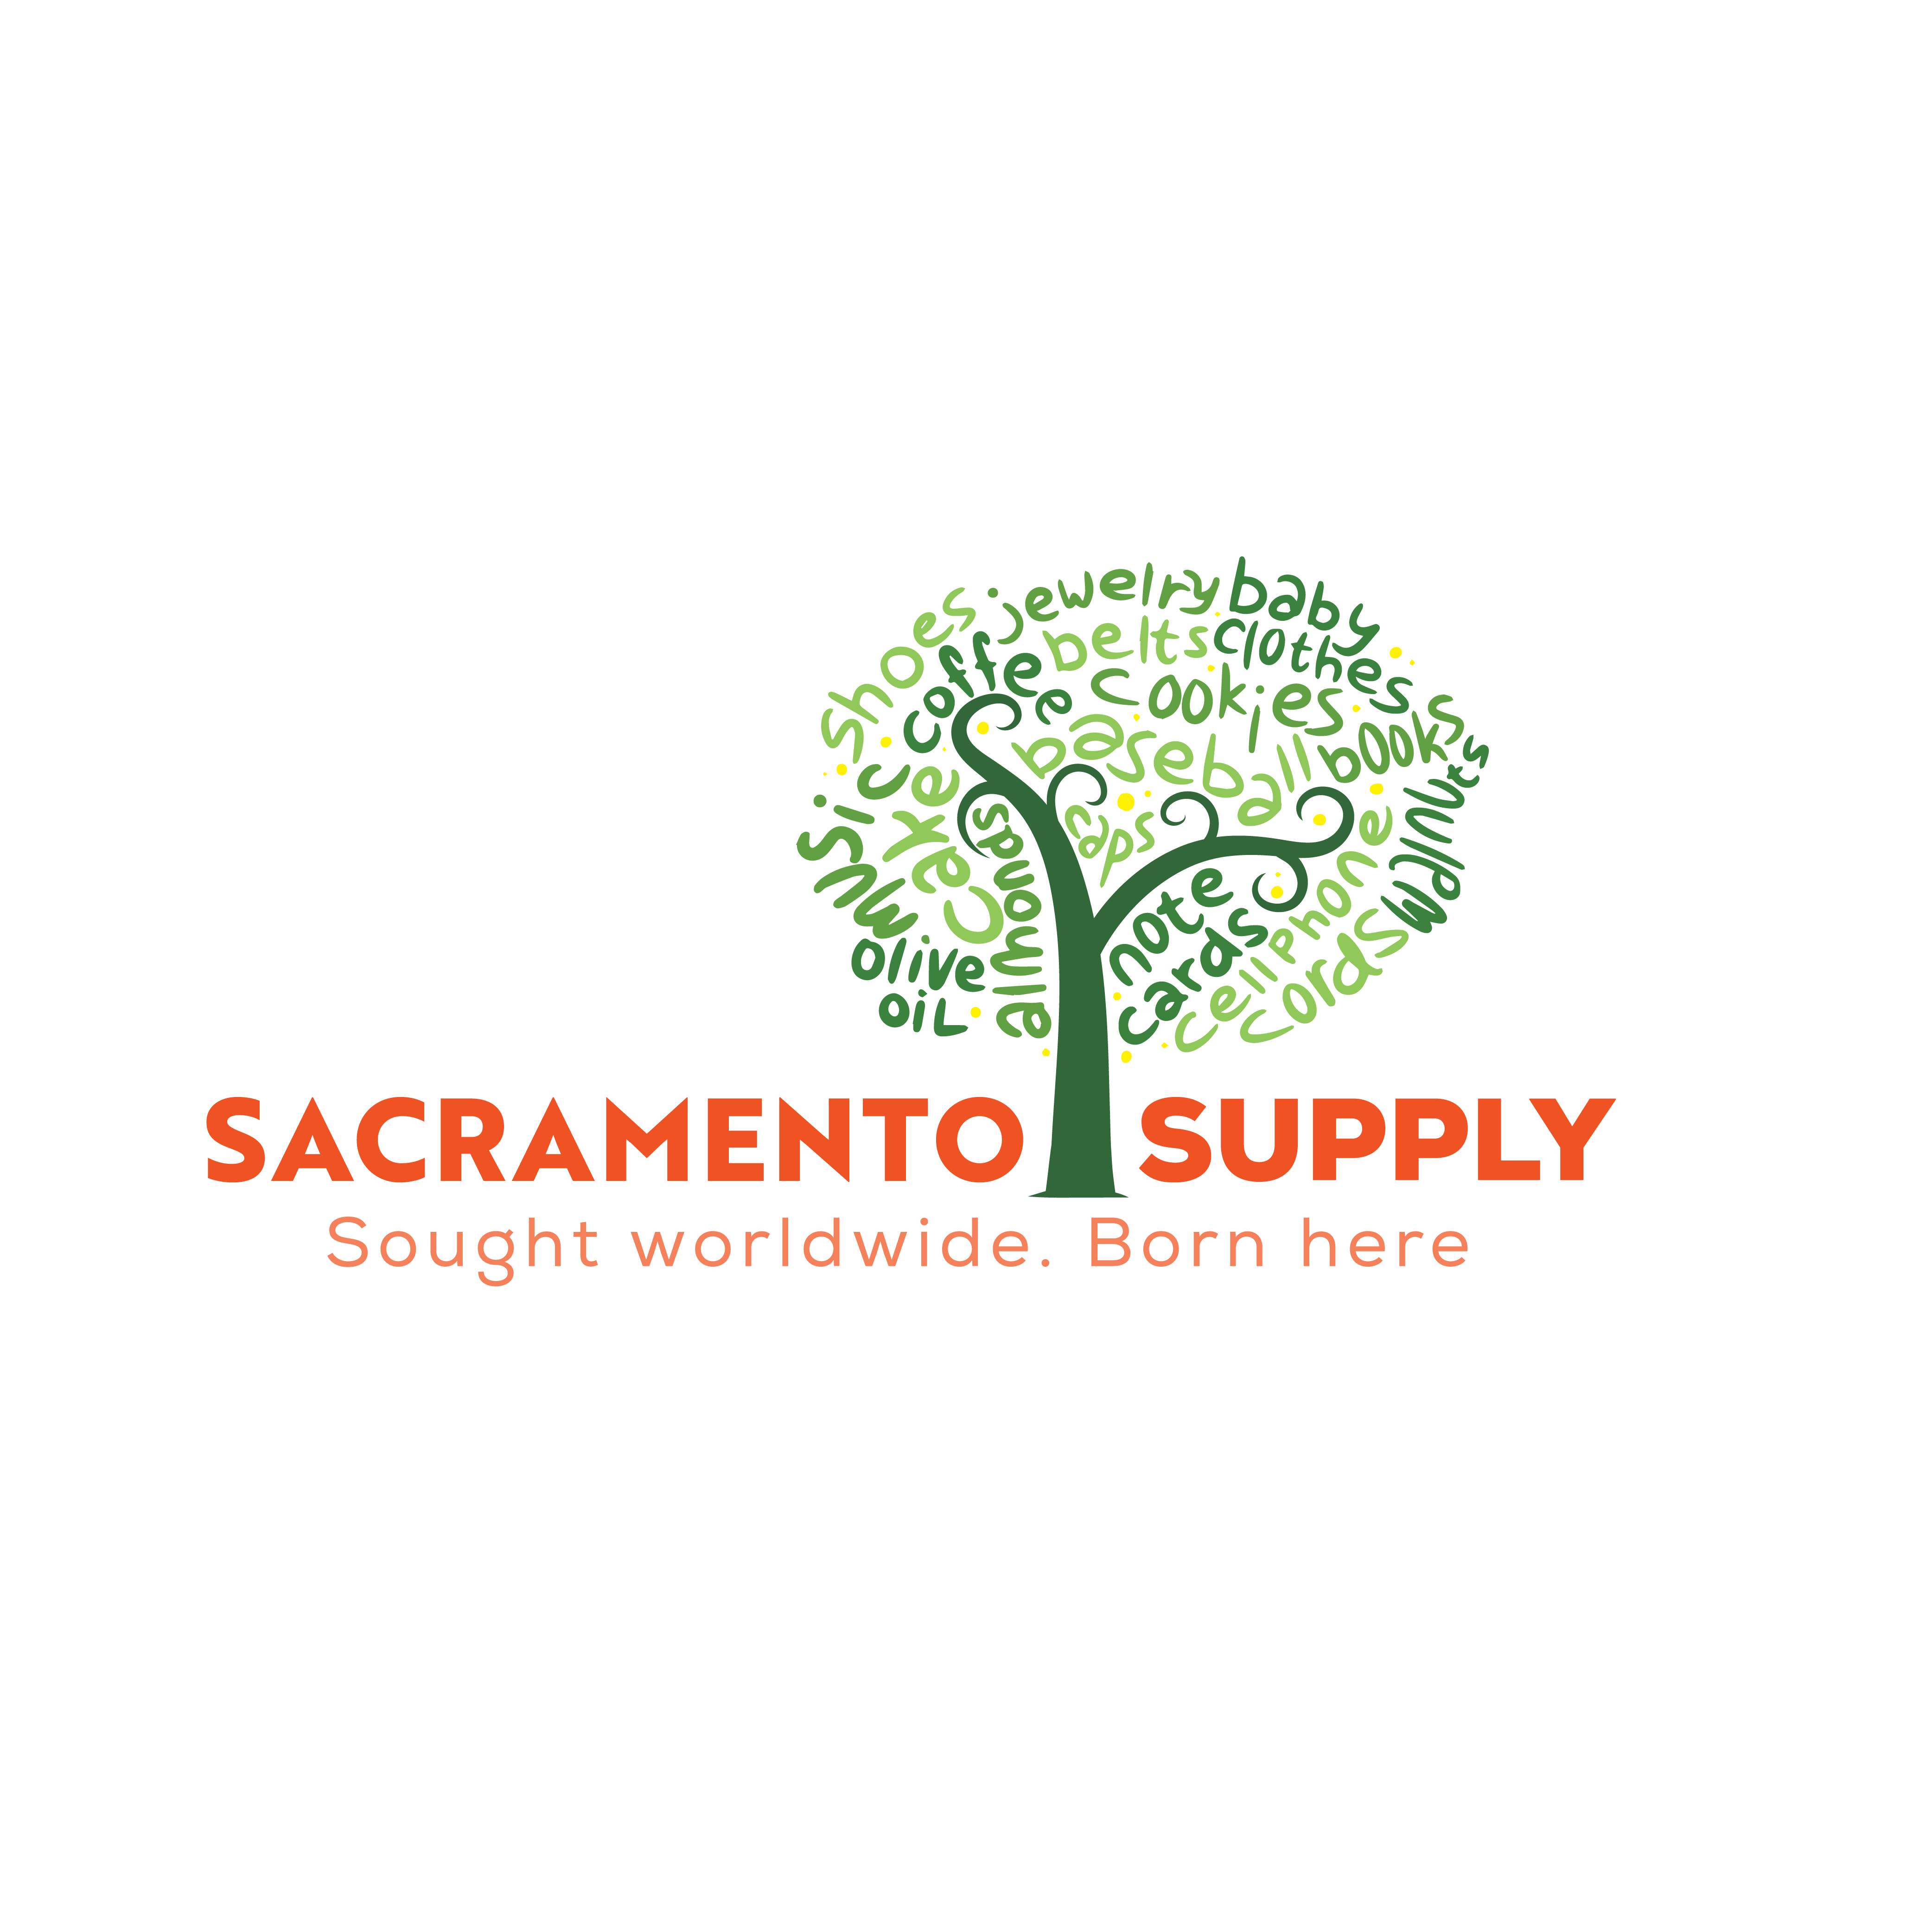 Sacramento Supply wants a sophisticated river-tree design